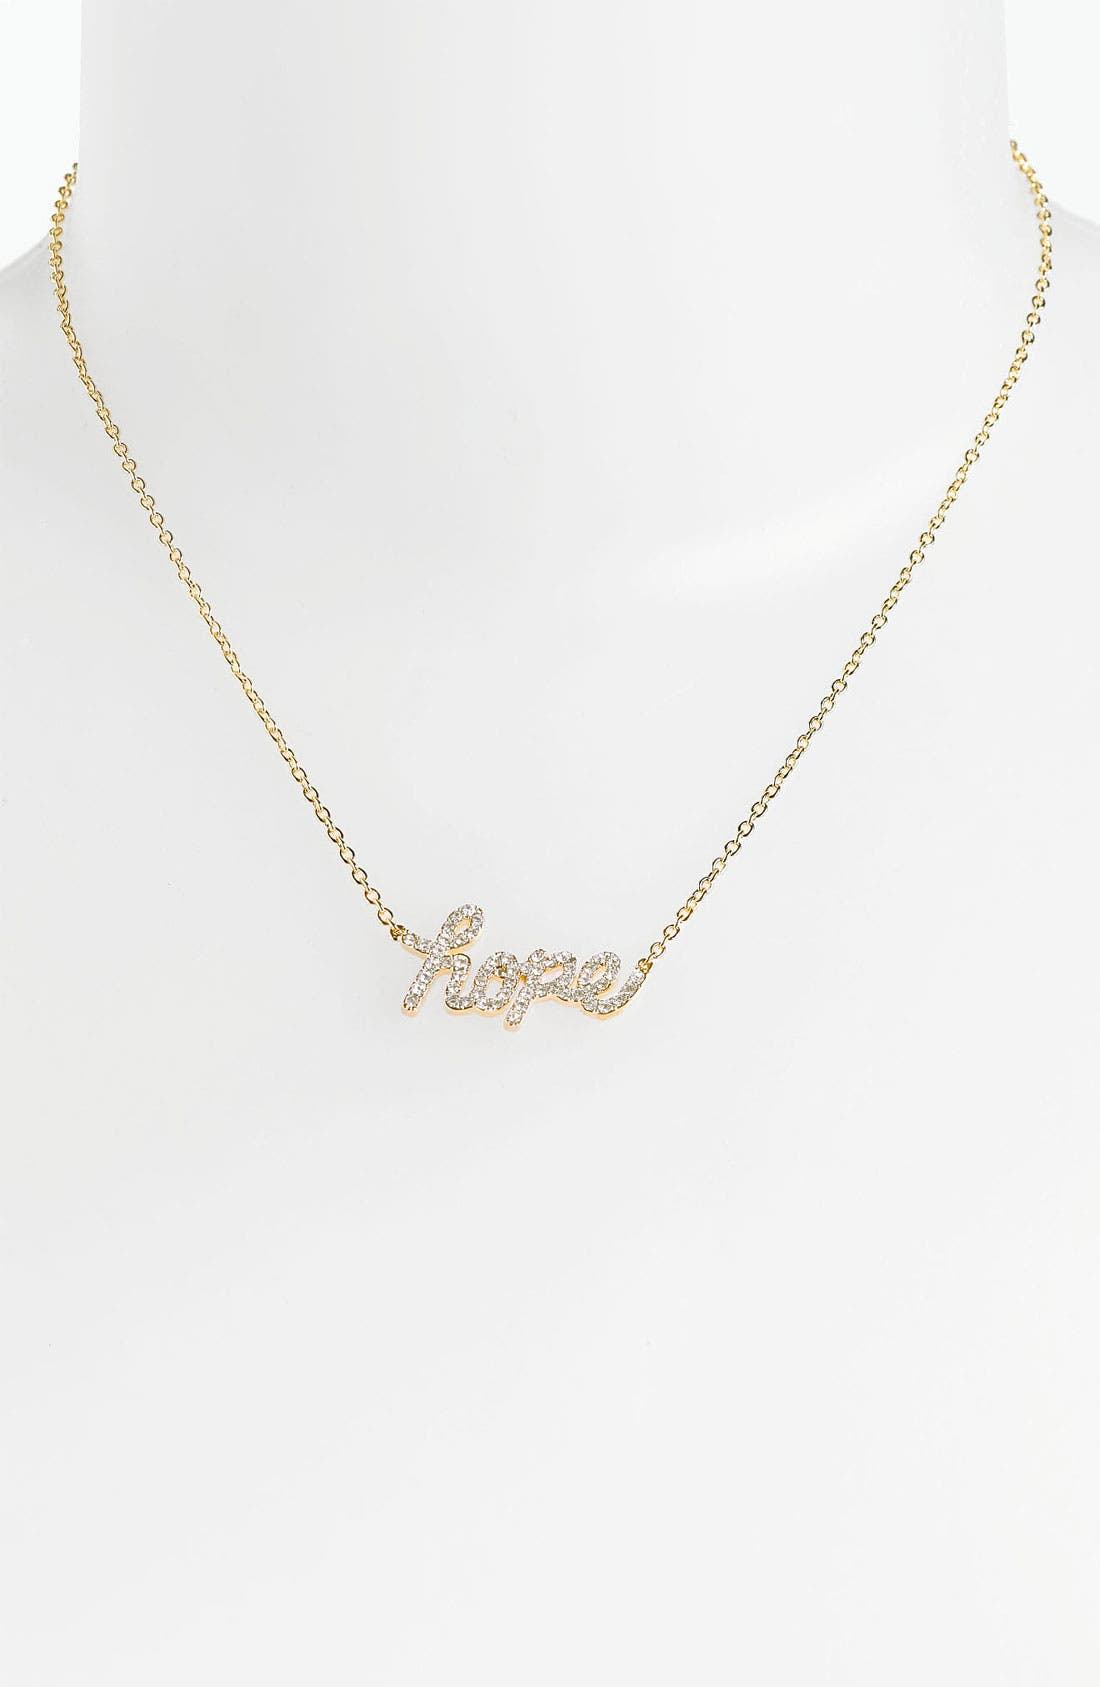 Main Image - Ariella Collection 'Messages - Hope' Script Pendant Necklace